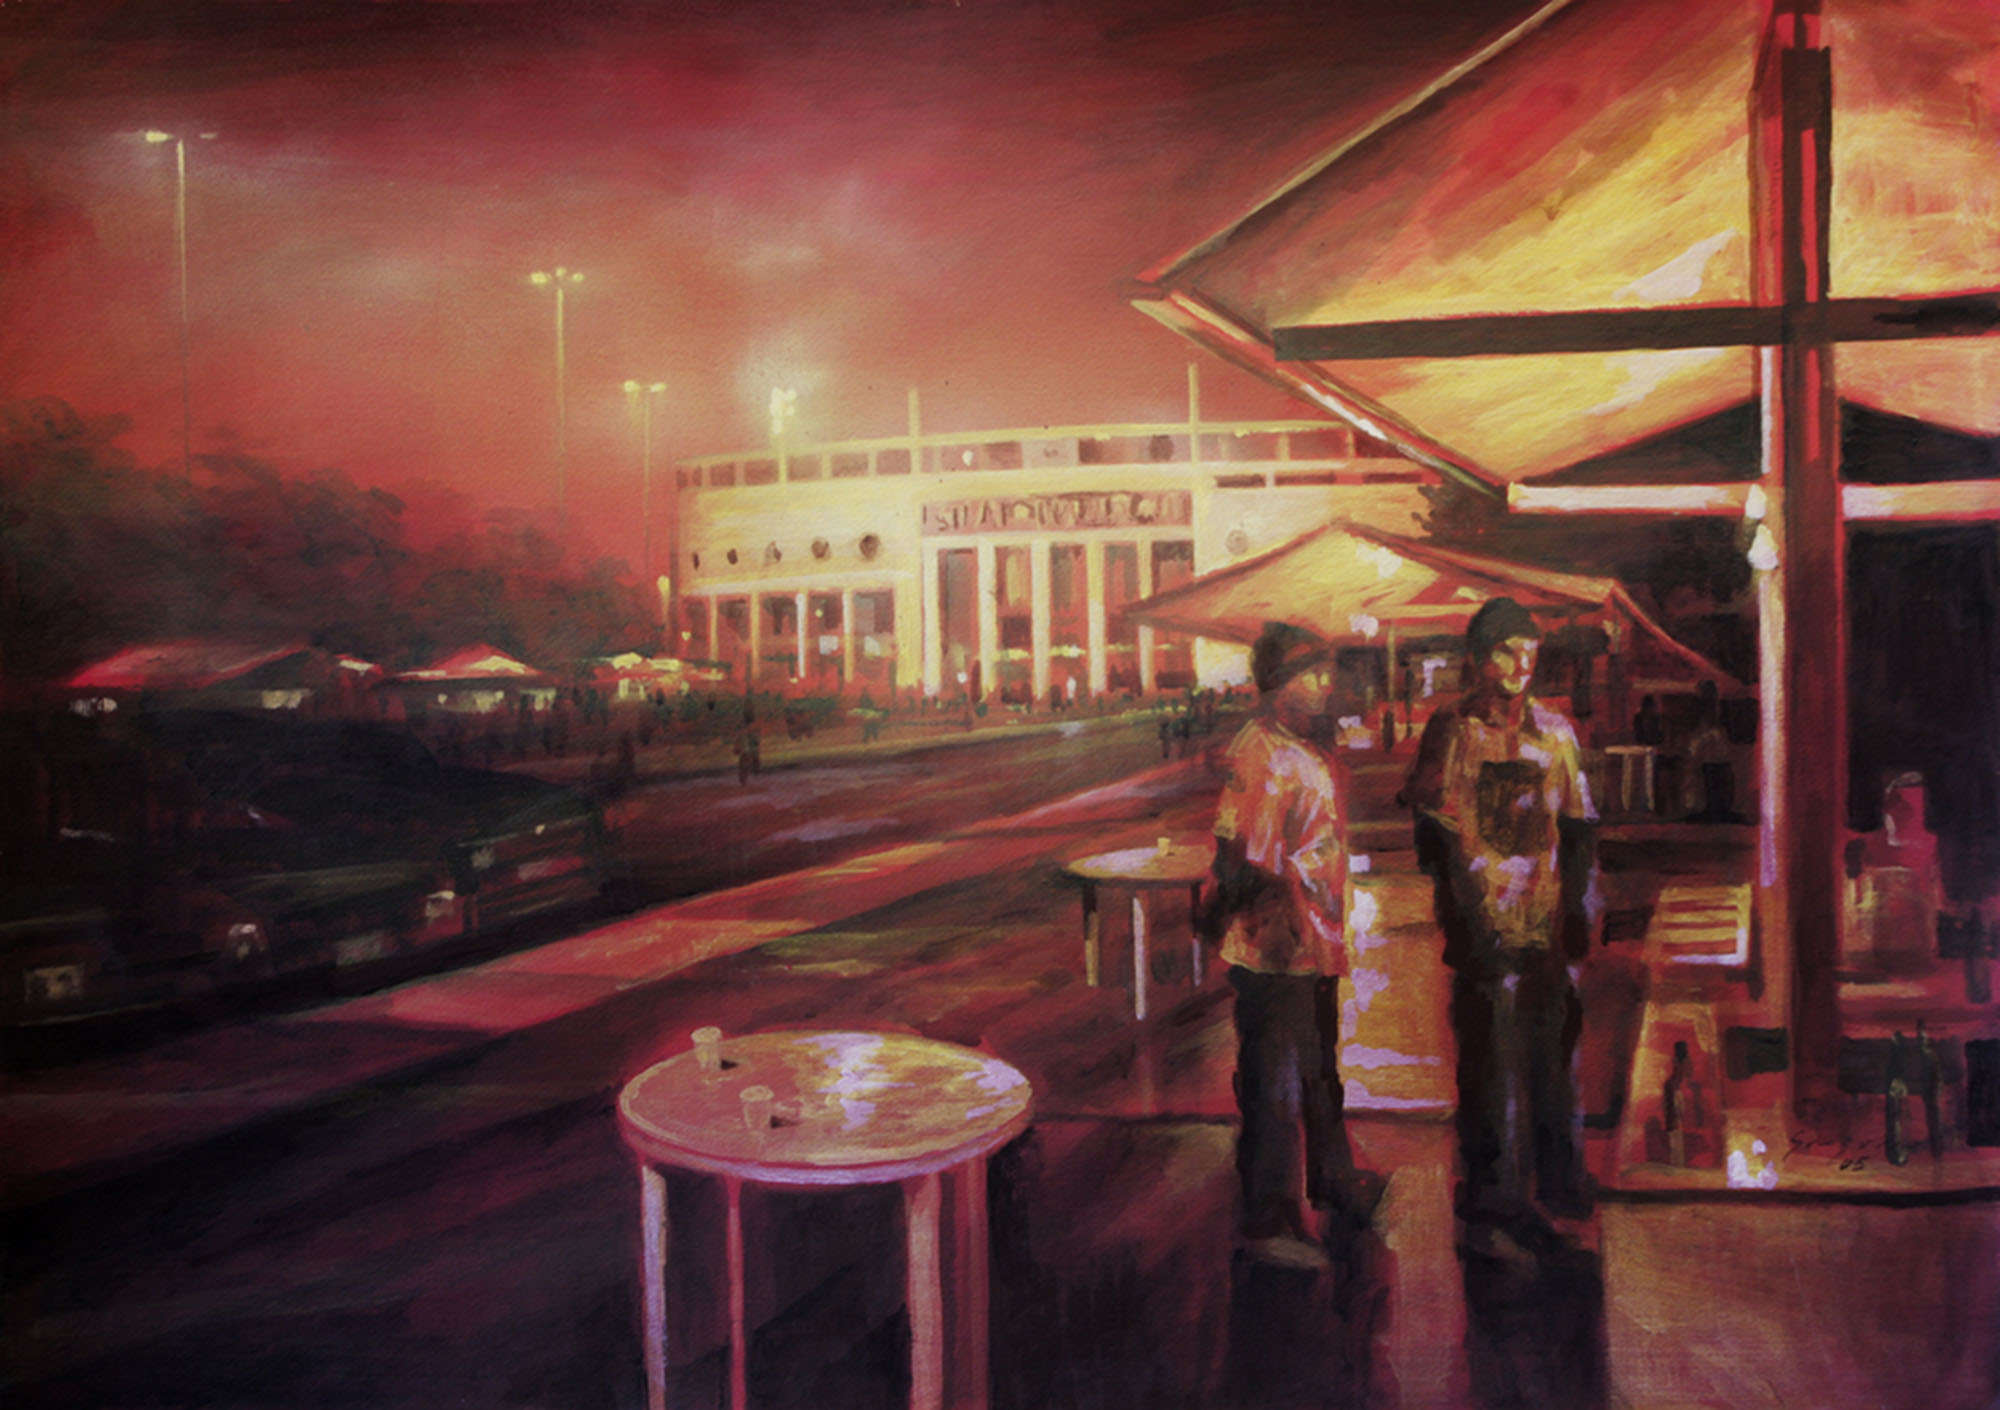 Pintura do artista Gregório Gruber do EStádio do Pacaembú.